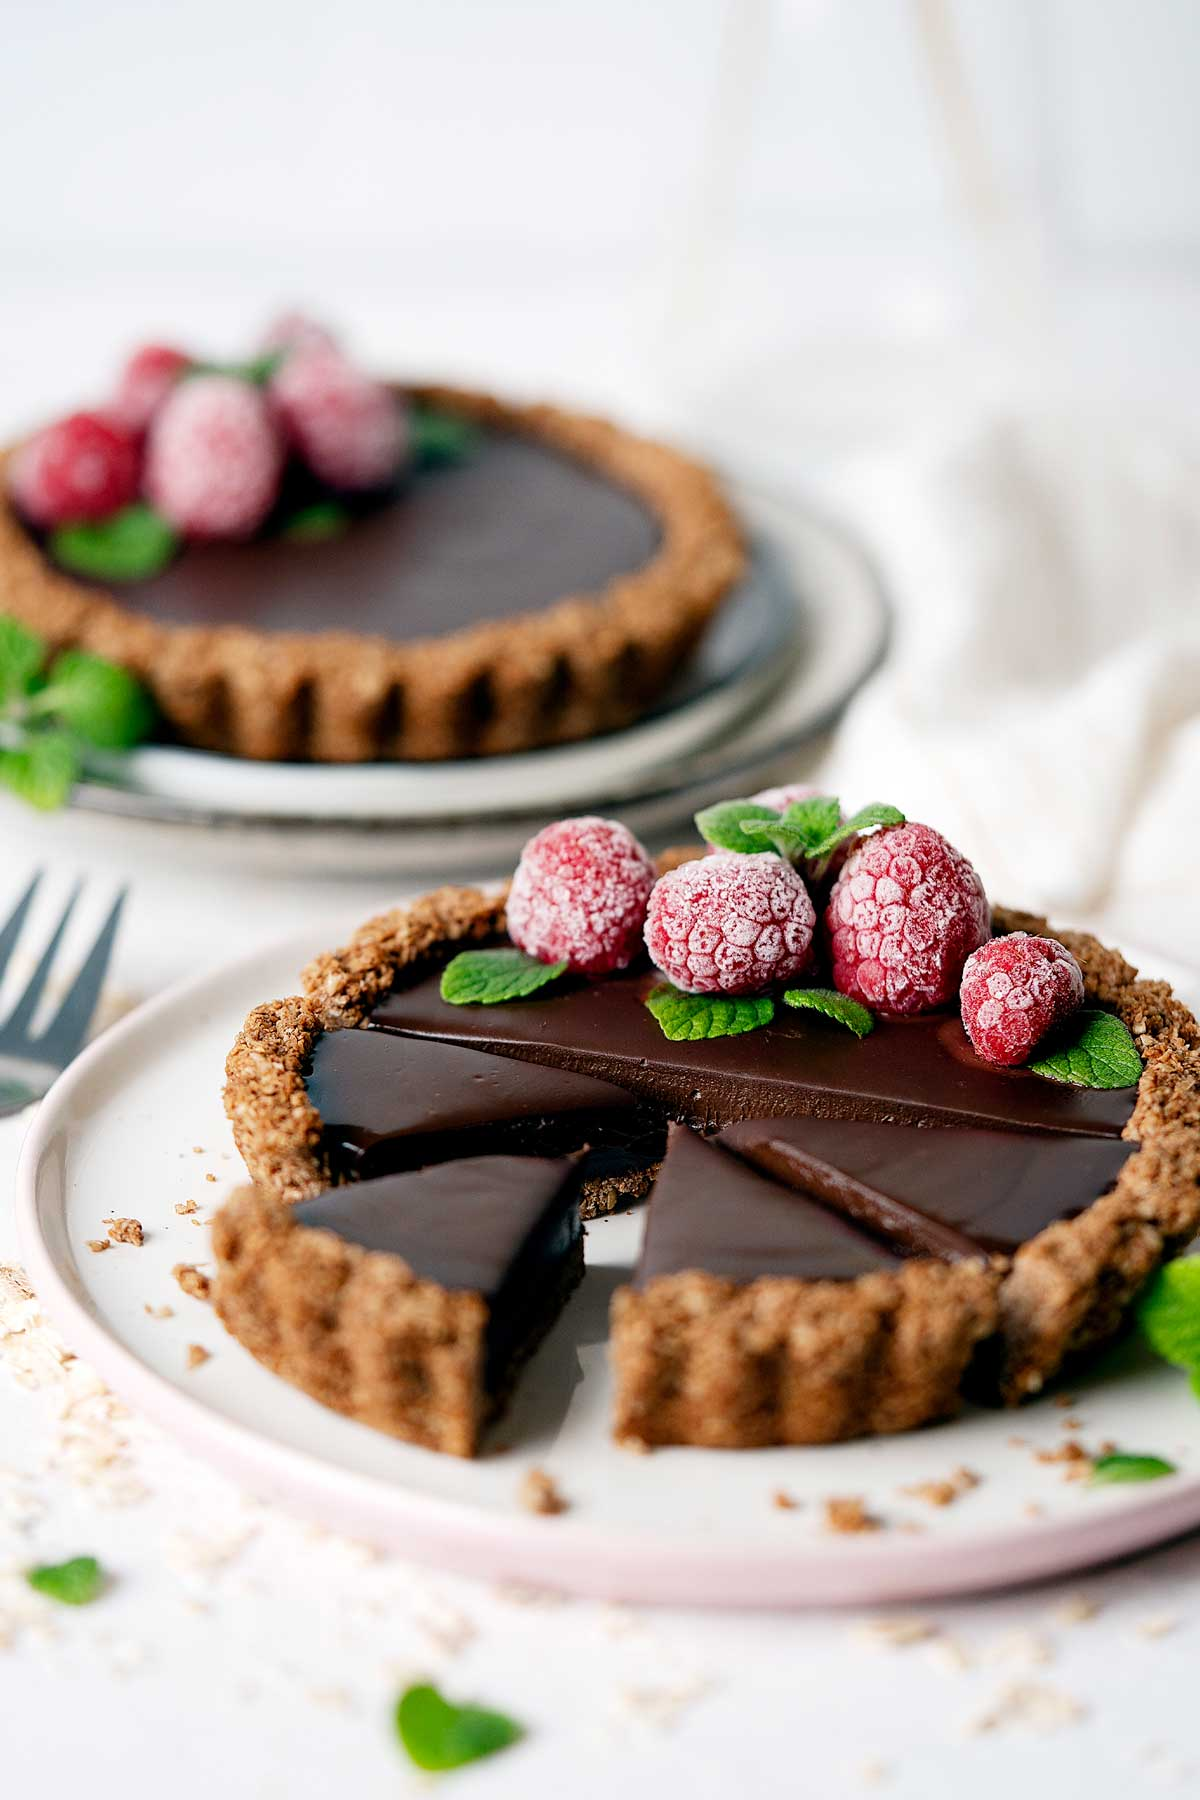 Healthy chocolate coconut tarts with a few slices view from front